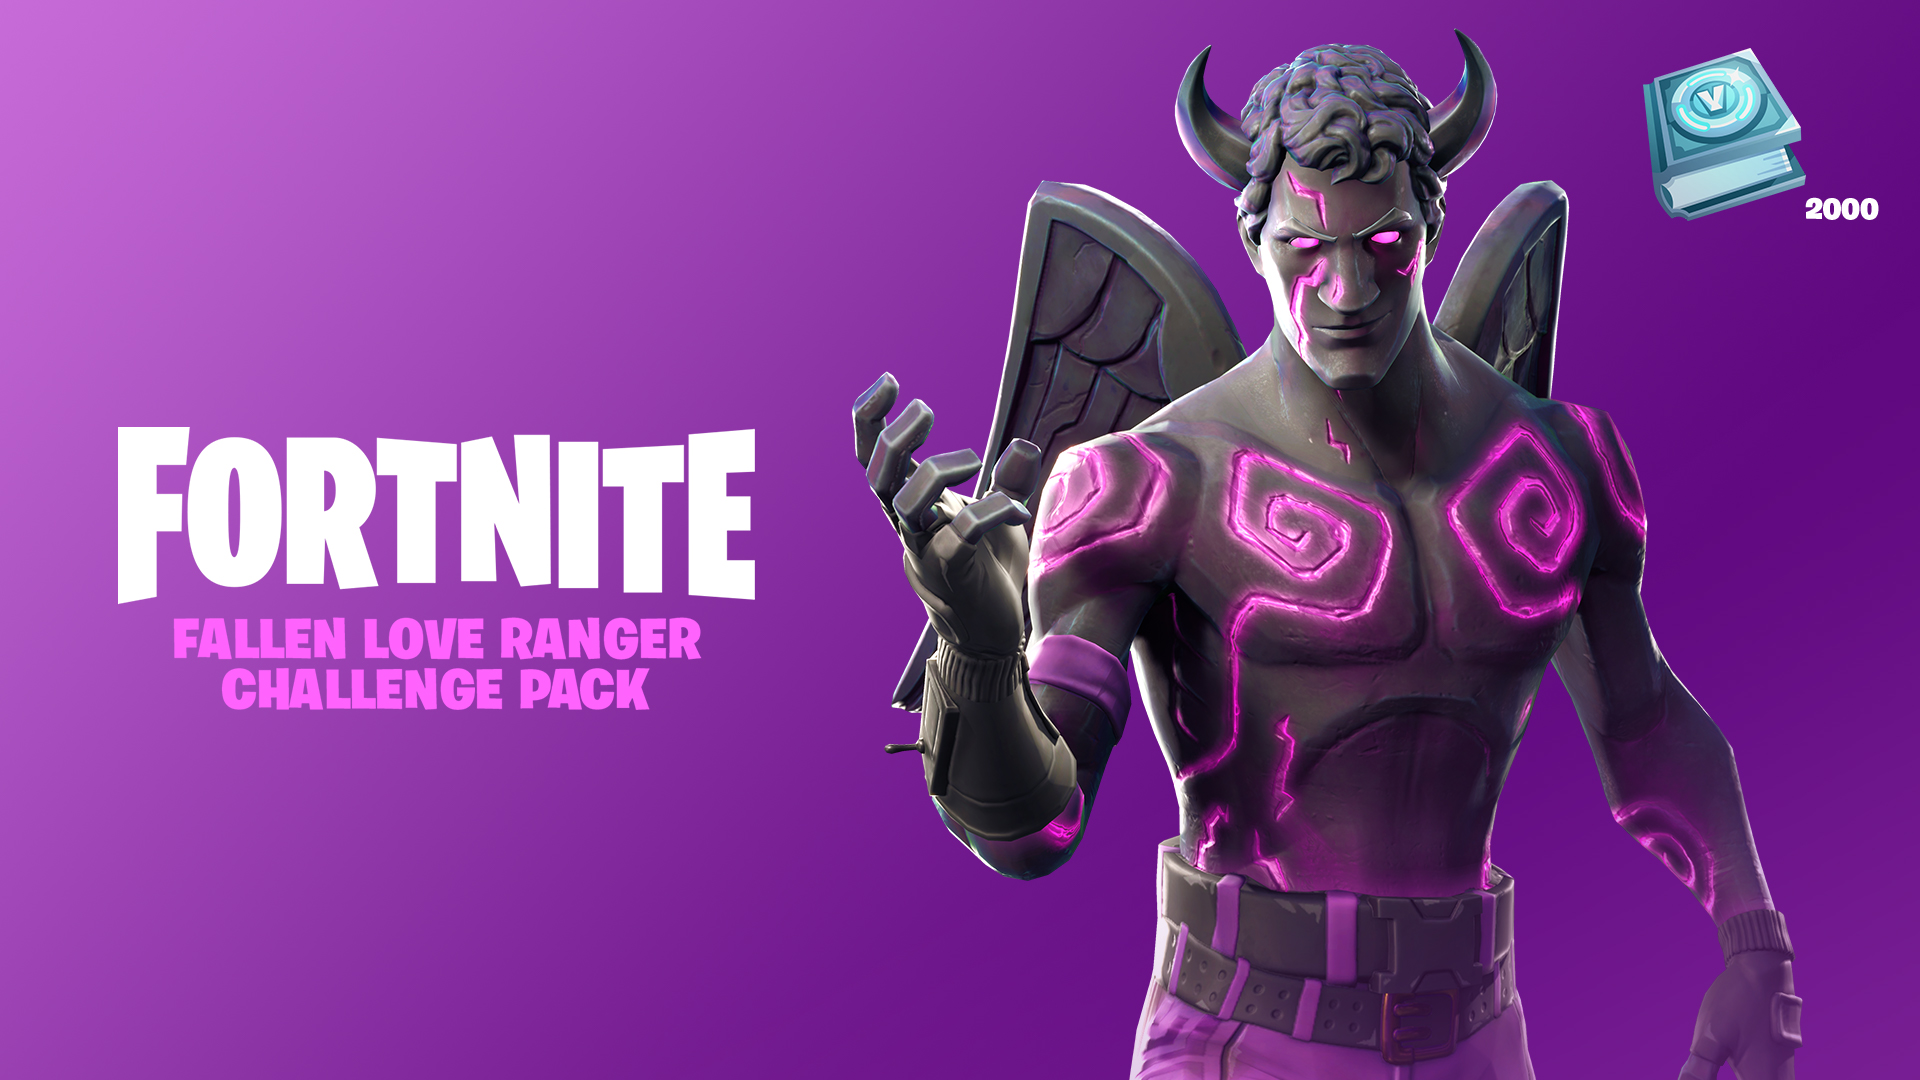 Playstation On Twitter Love Hurts Take On Fortnite S Fallen Love Ranger Pack Challenges And Earn Up To 2 000 V Bucks Https T Co J87joka2wm Https T Co Vngpeph5h1